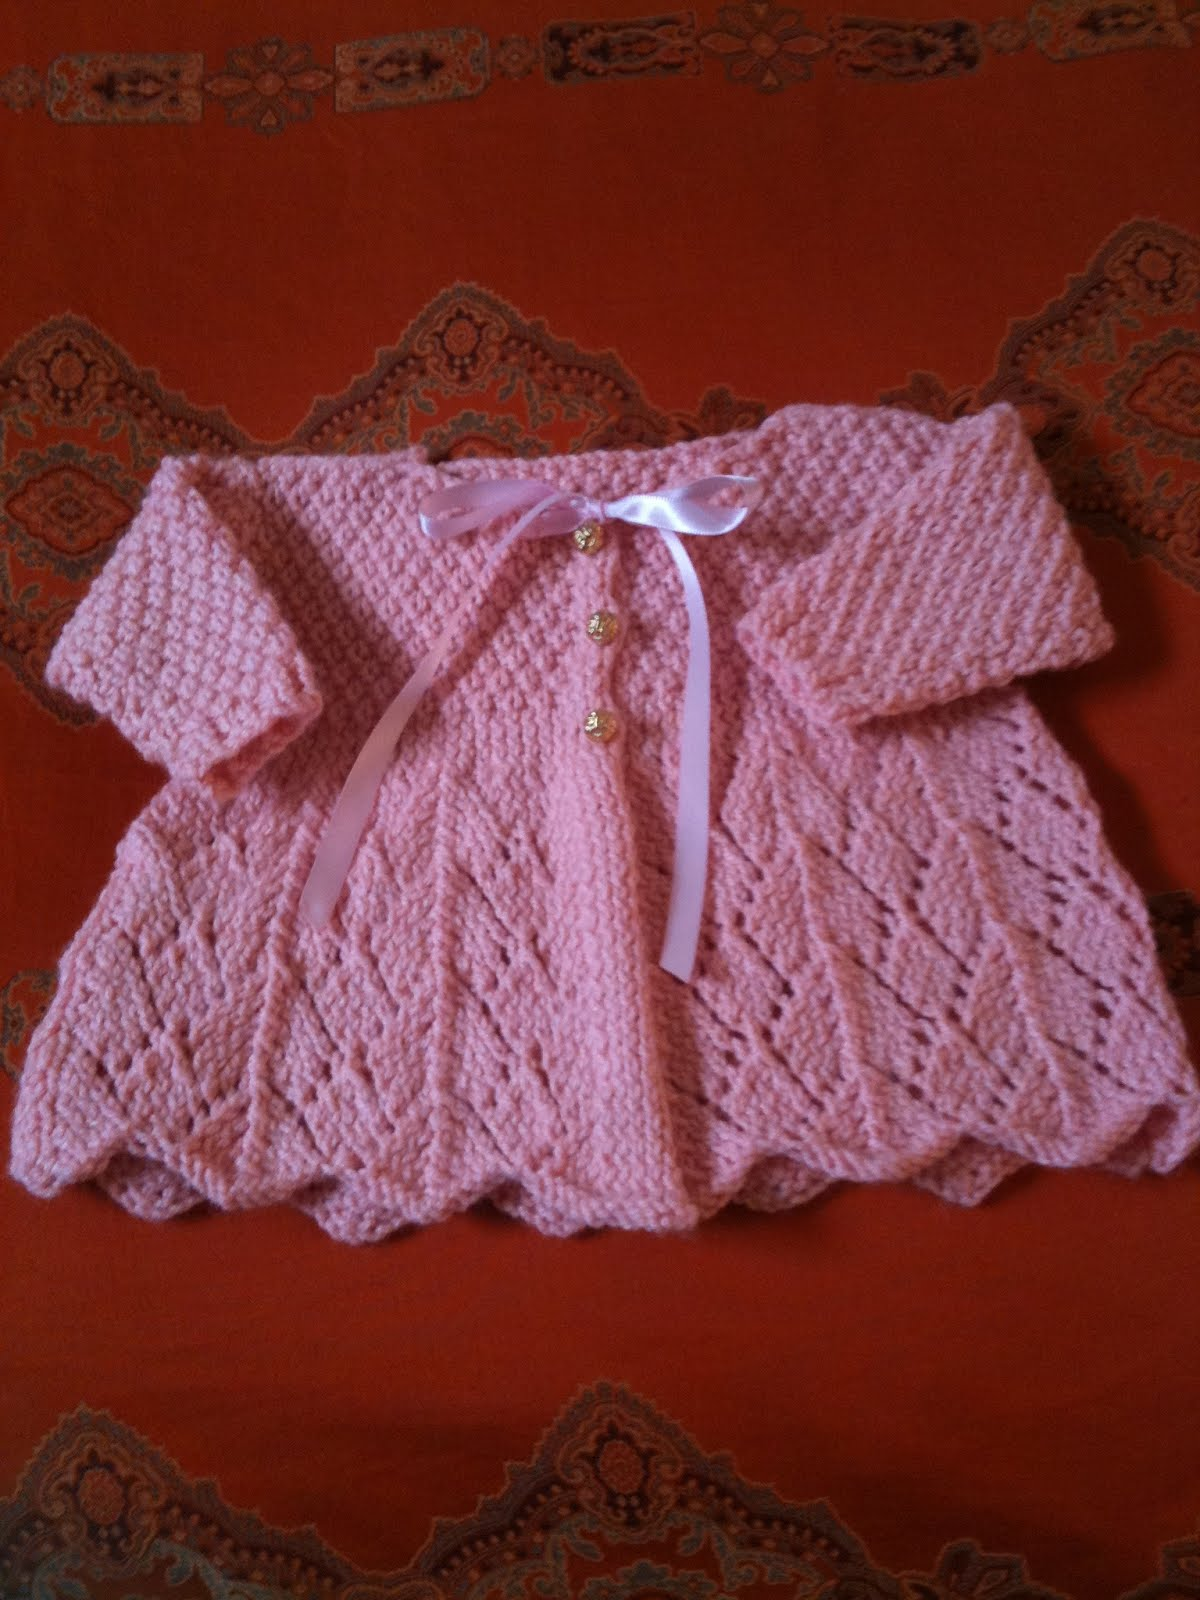 Free Babies Knitting Patterns For Cardigans : La Dolce Duchessa: Lace Baby Sweater